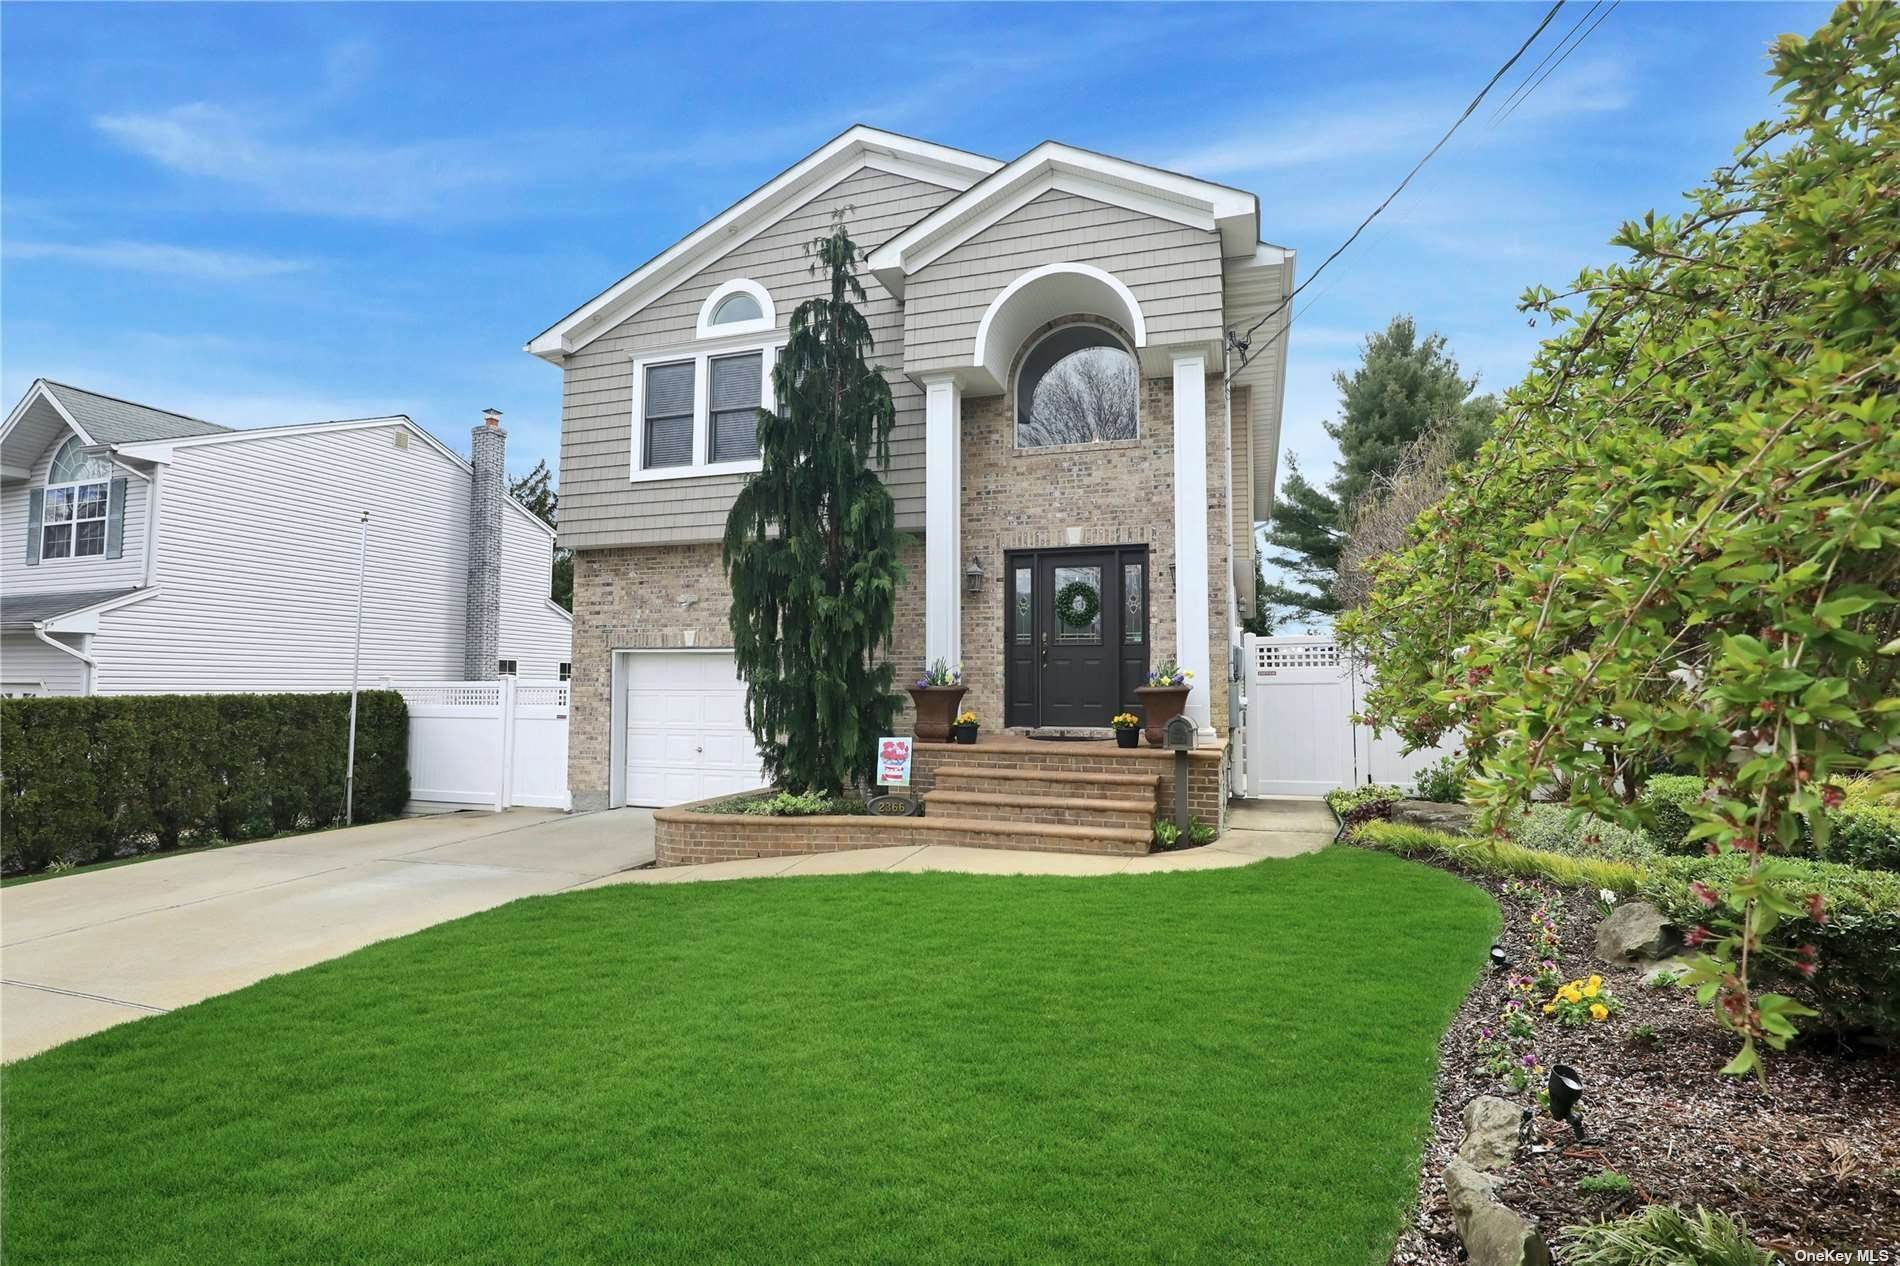 Residential for Sale at 2366 Schiller Avenue North Bellmore, New York 11710 United States